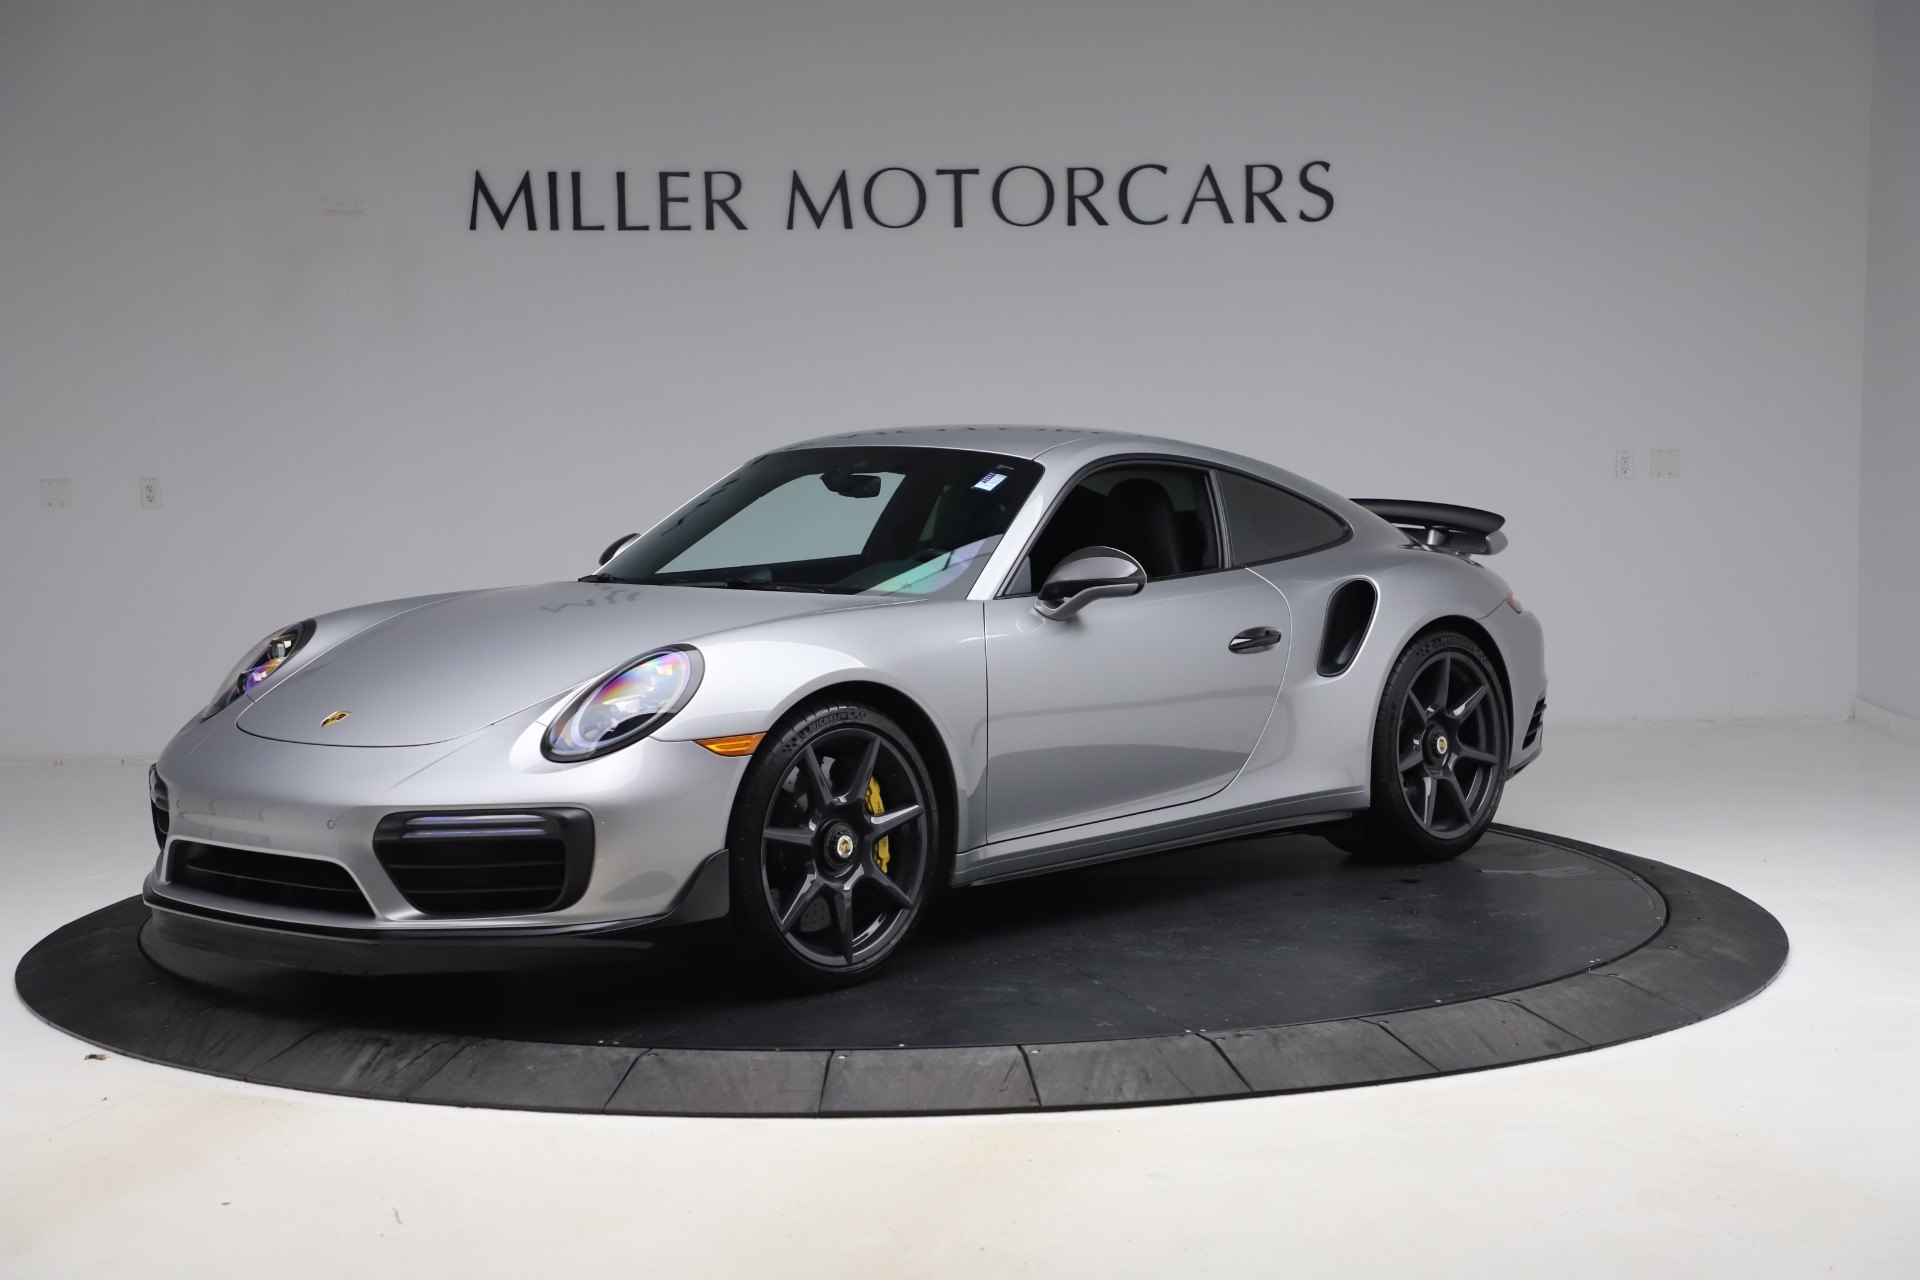 Used 2019 Porsche 911 Turbo S for sale $177,900 at Maserati of Greenwich in Greenwich CT 06830 1